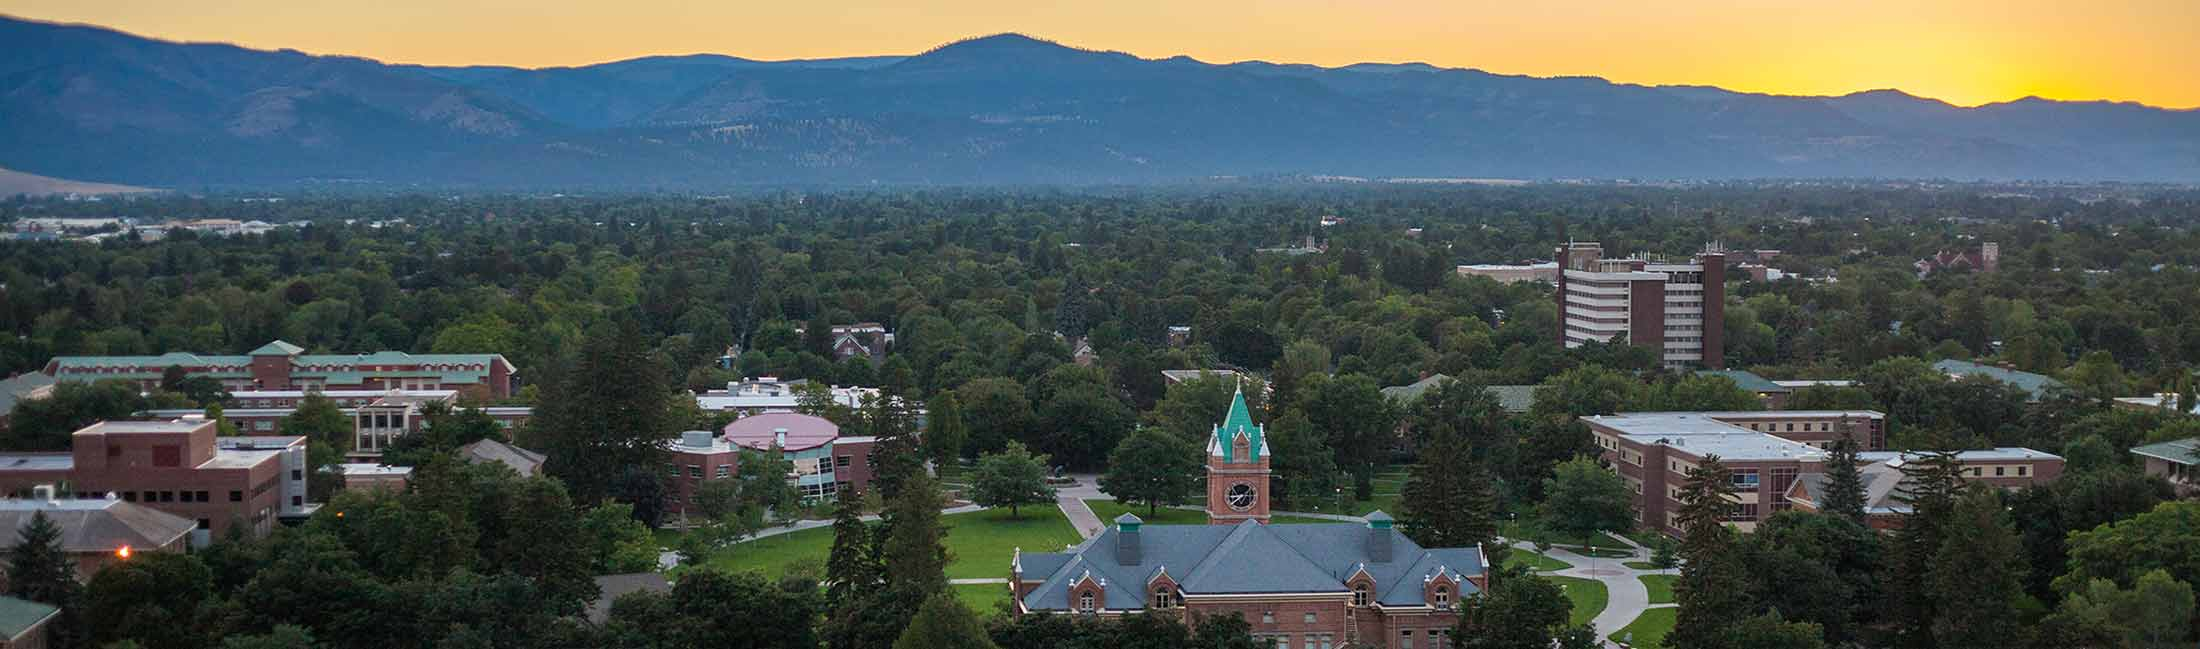 University Services in Missoula, Montana